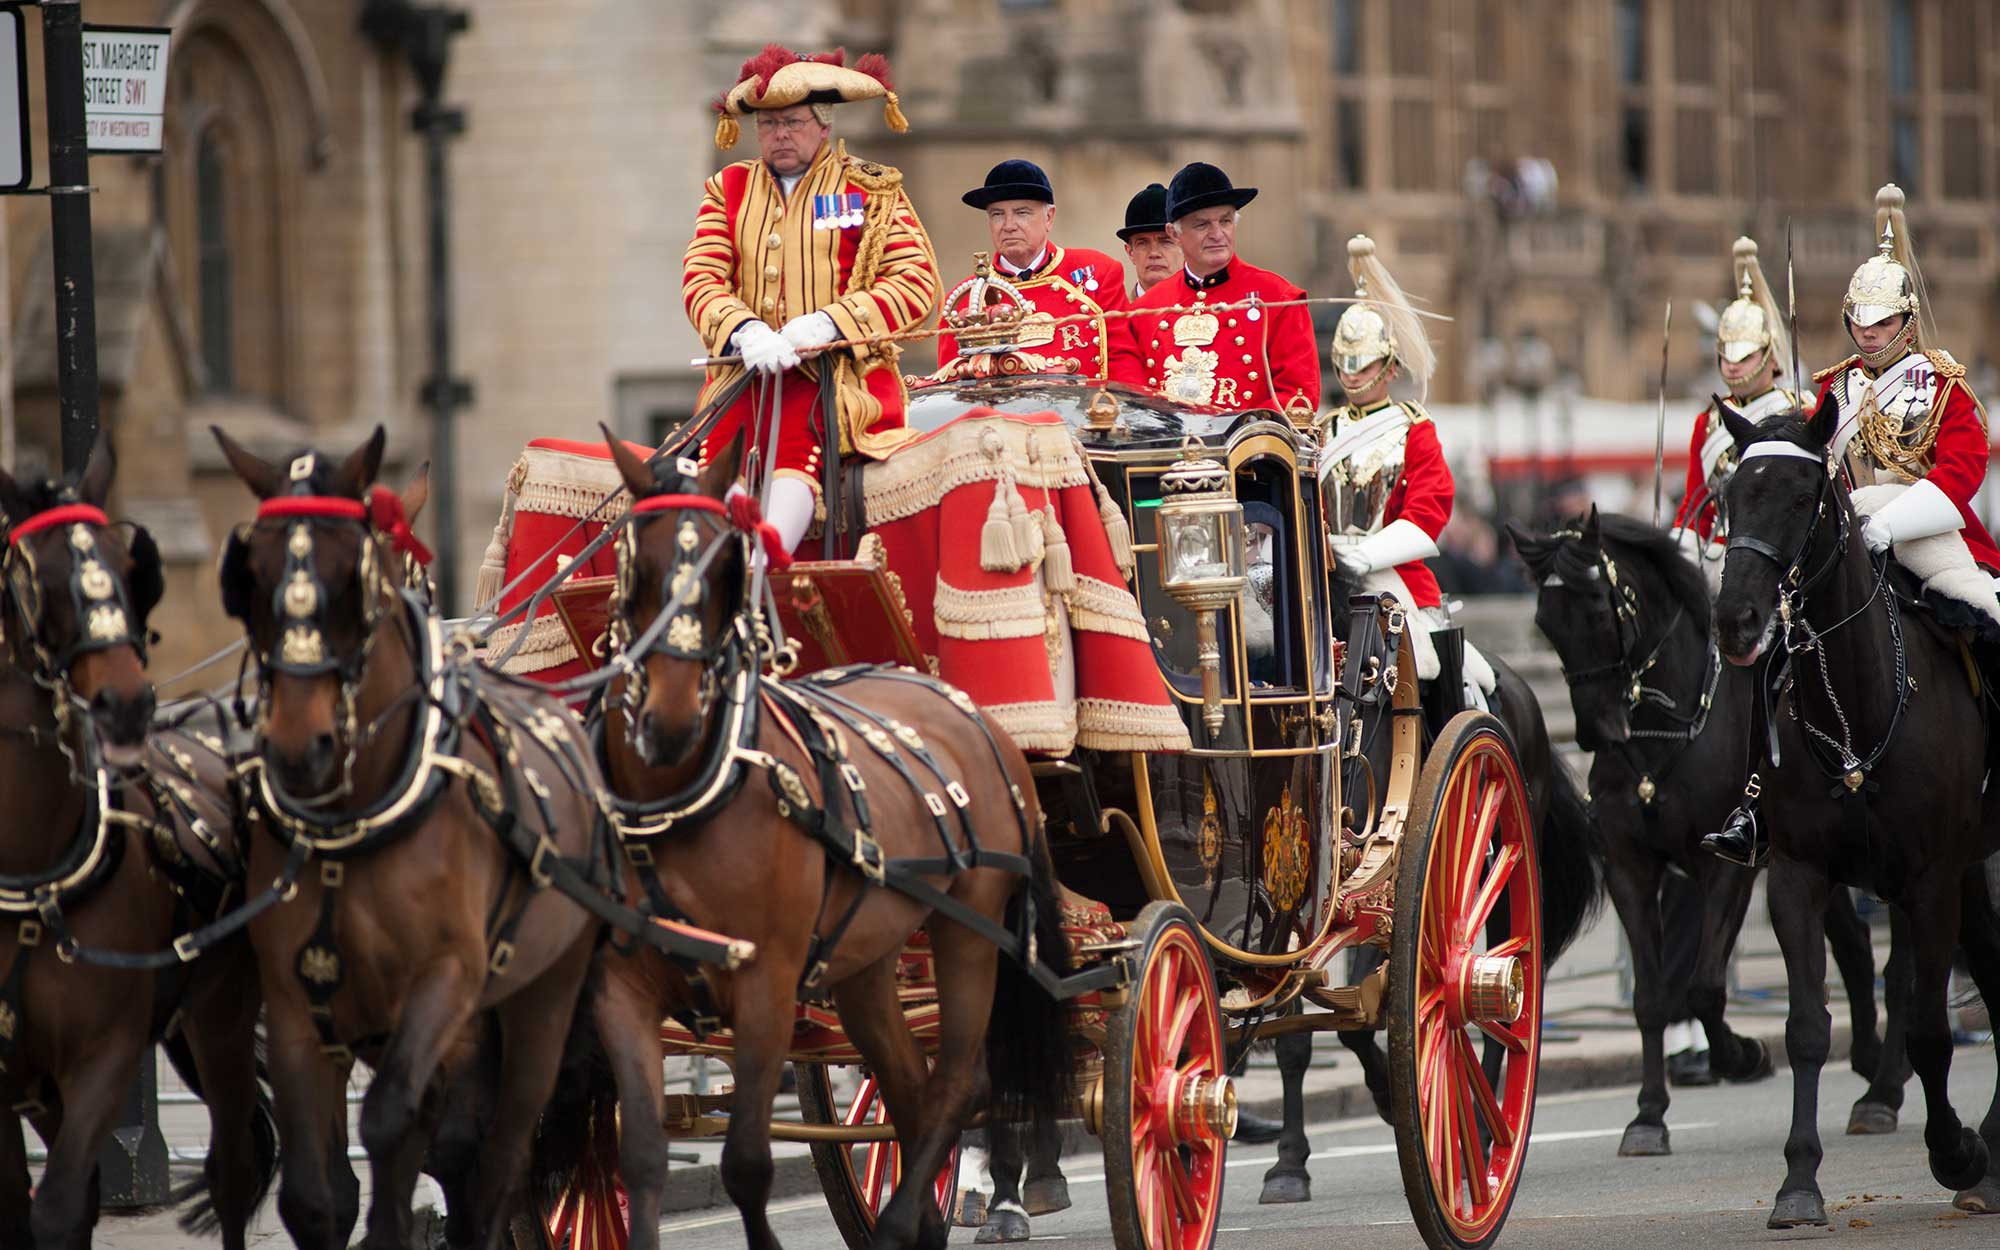 Ornate coach and mounted escort